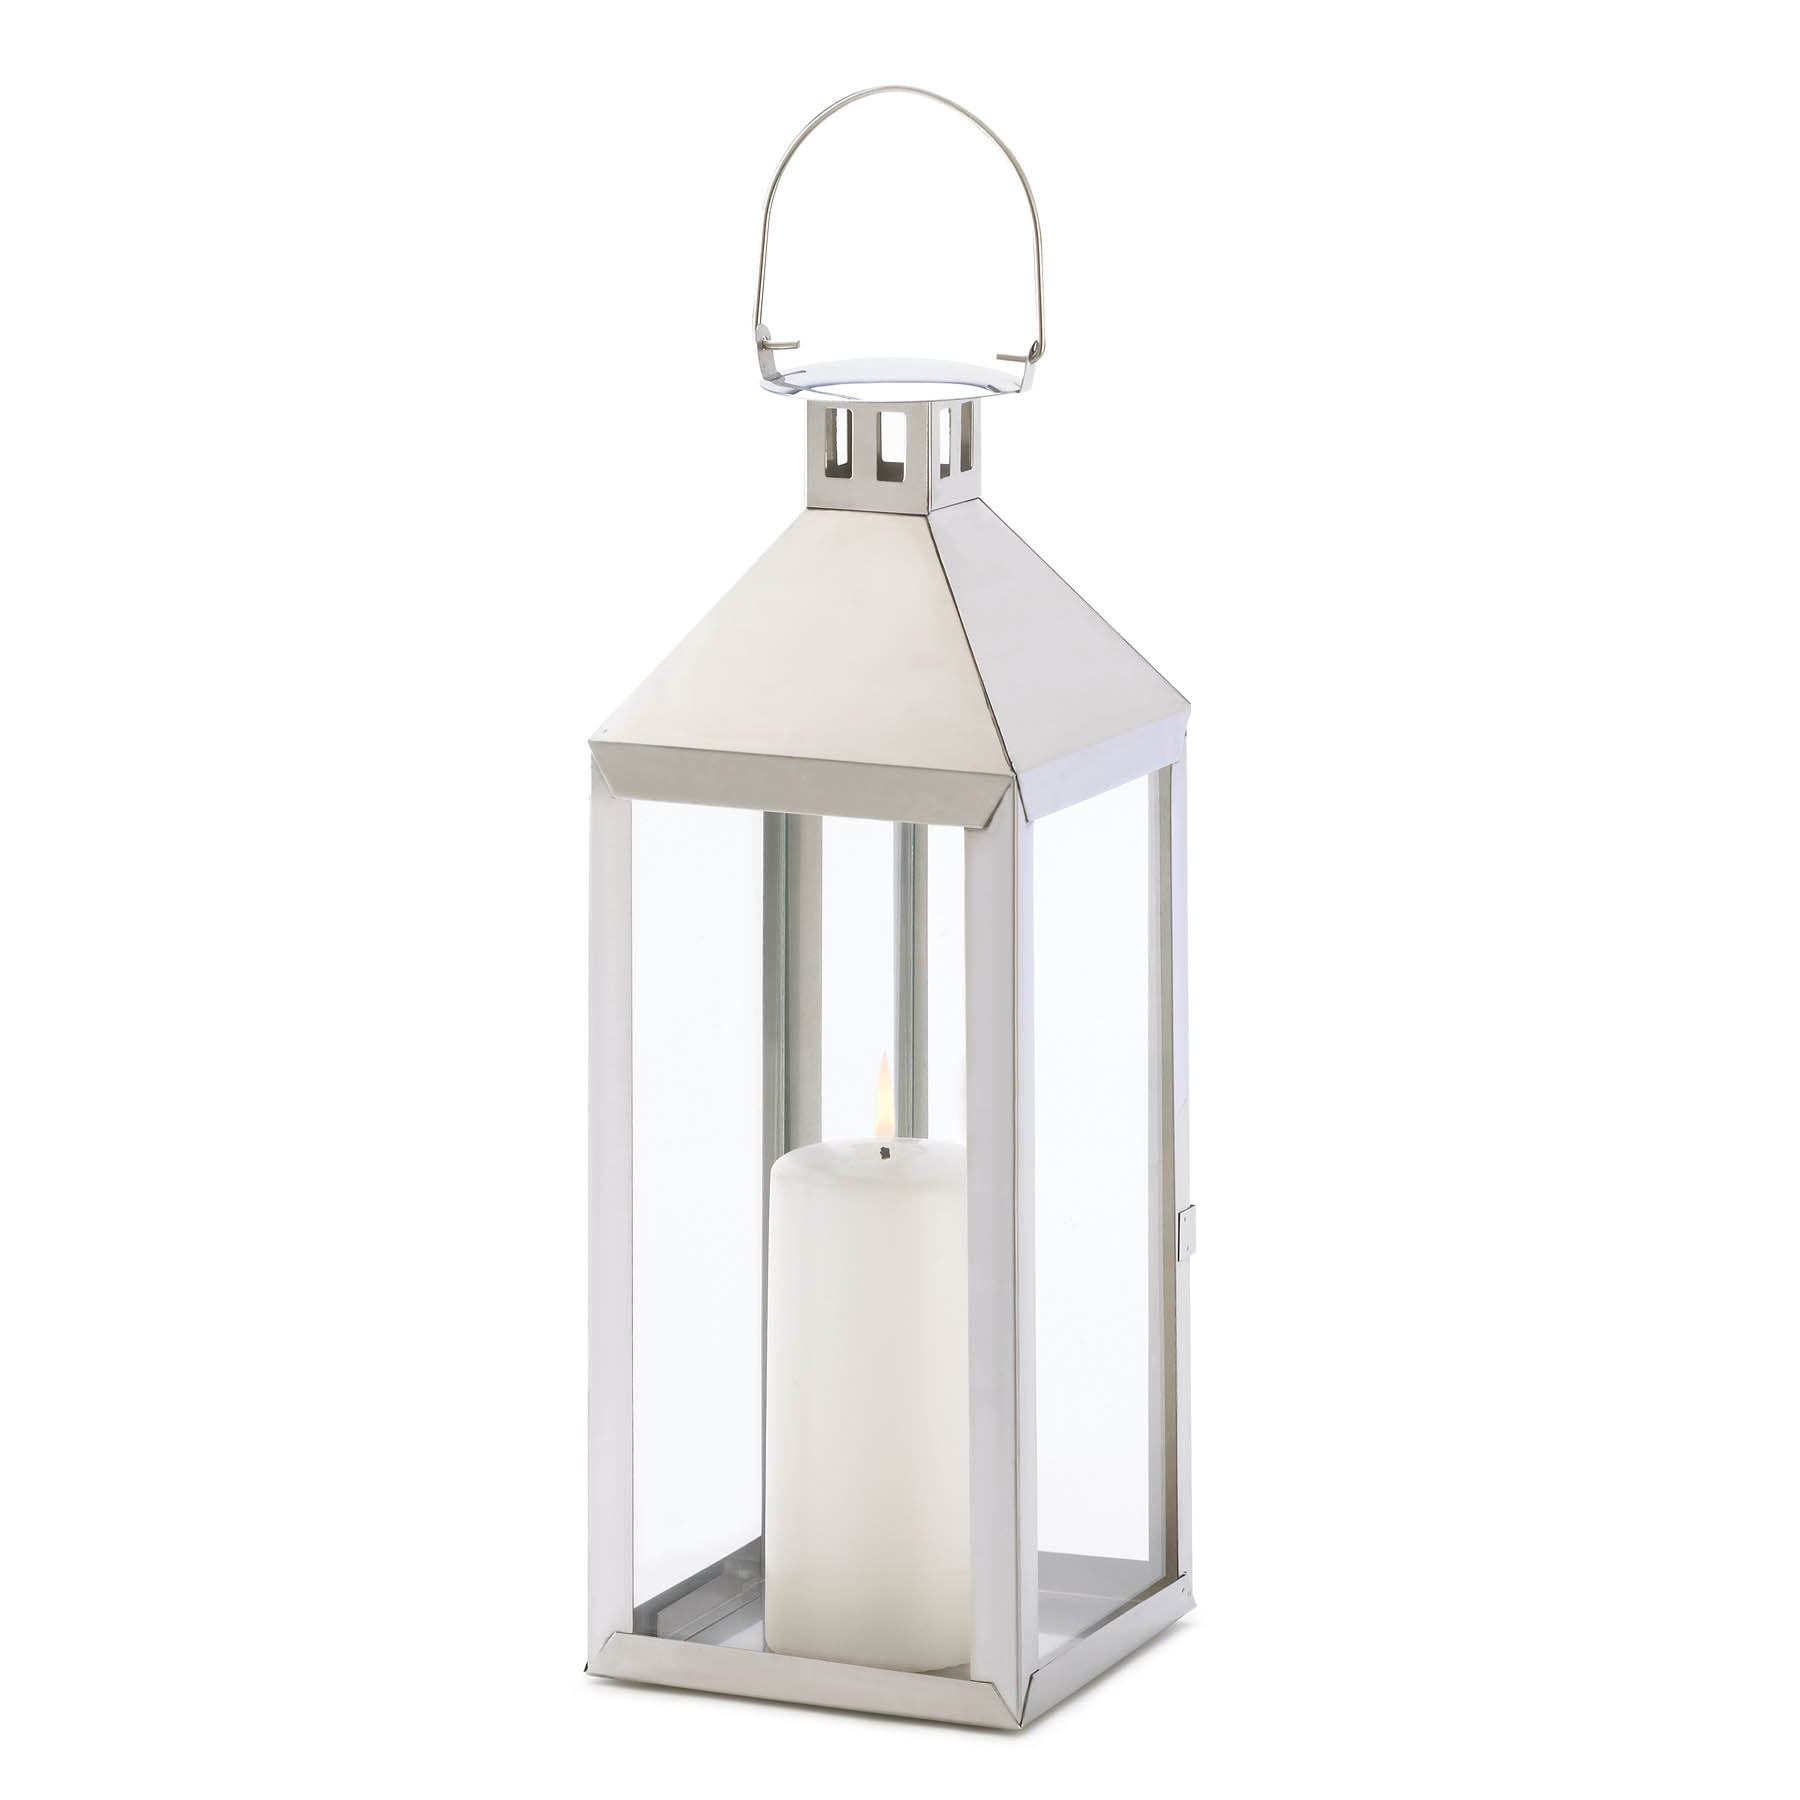 Gallery of Light Soho Candle Lantern - D1045